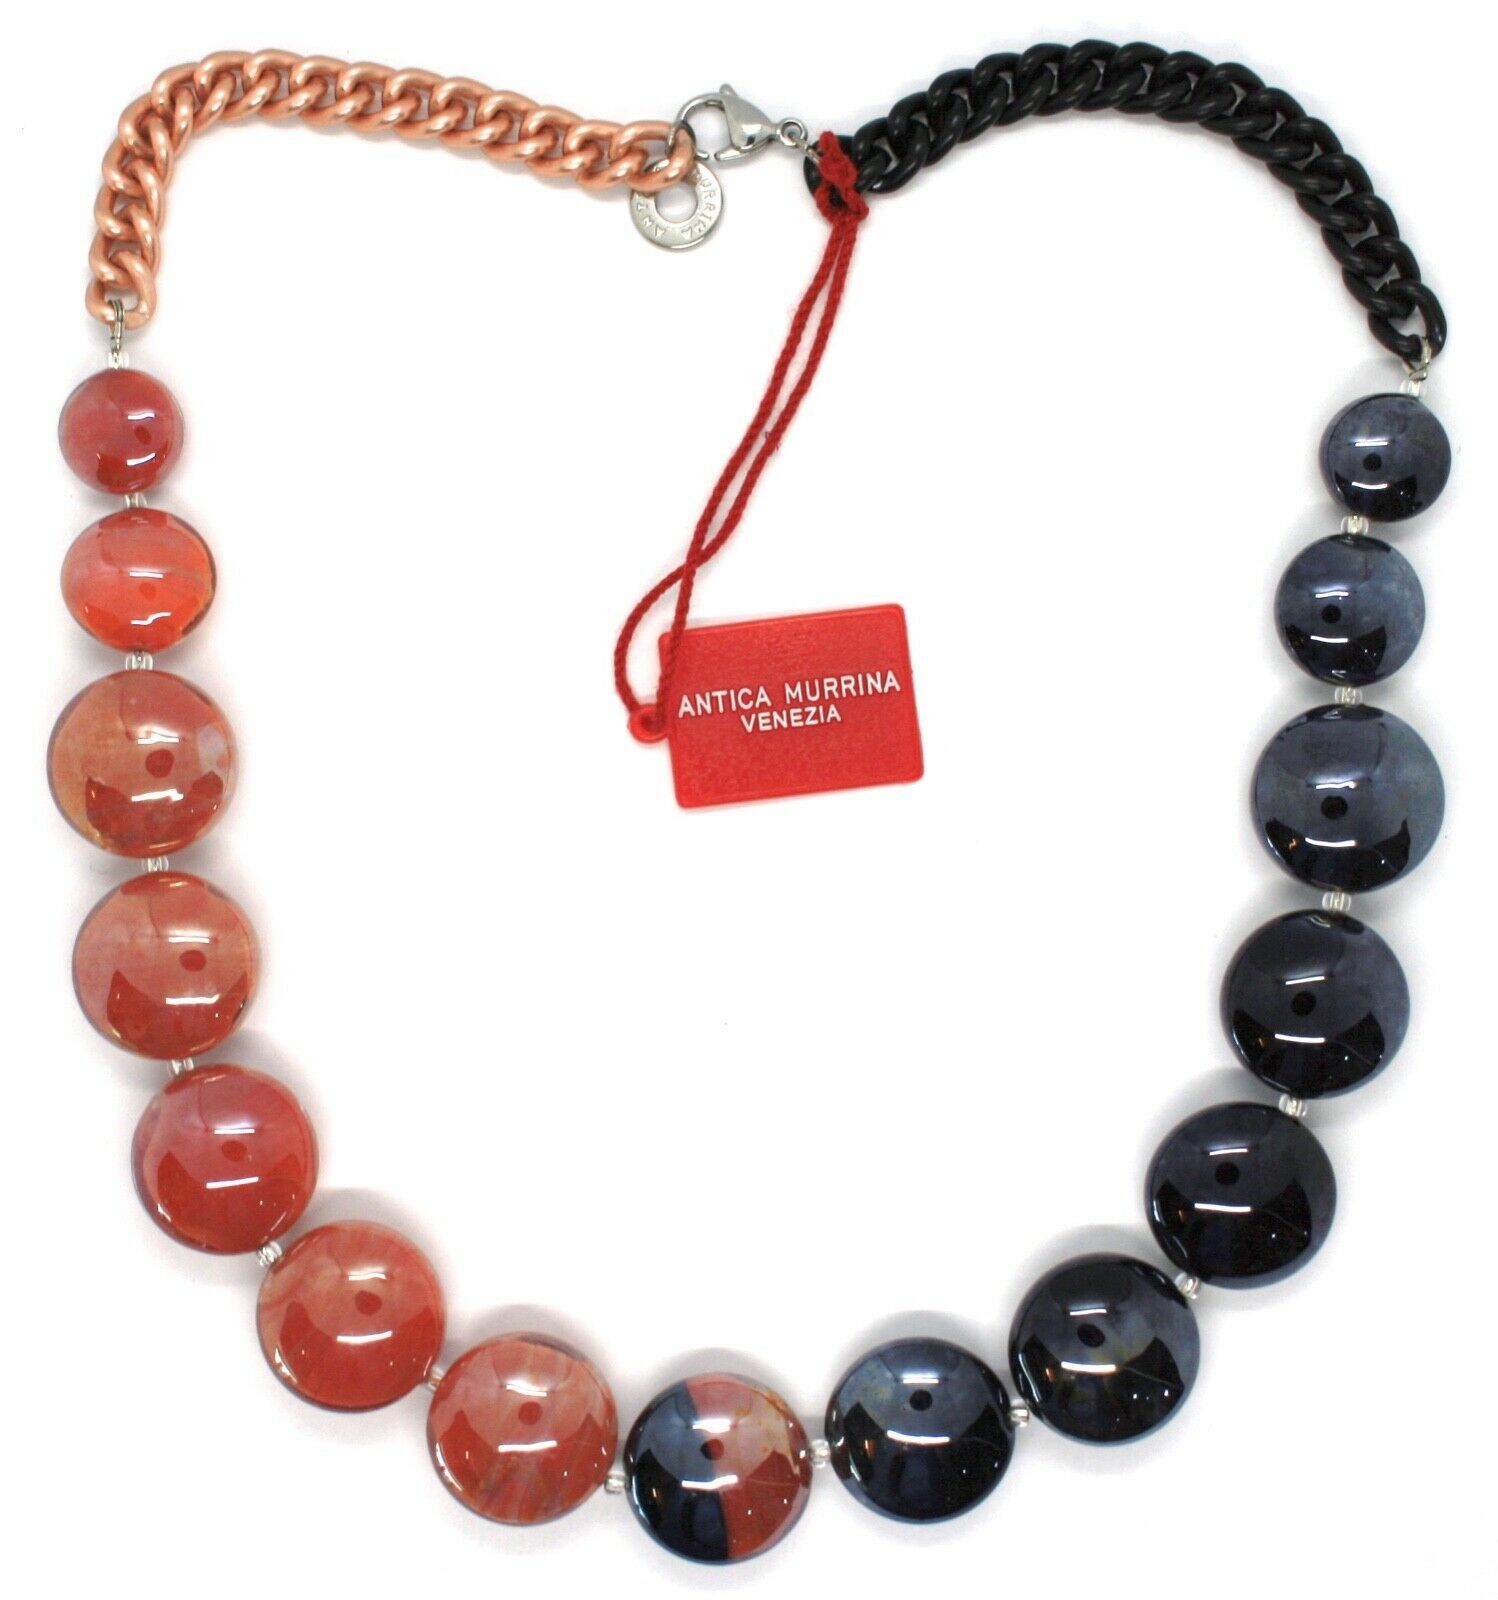 Necklace Antique Murrina, CO833A25, Chain Groumette, Discs, Red Black